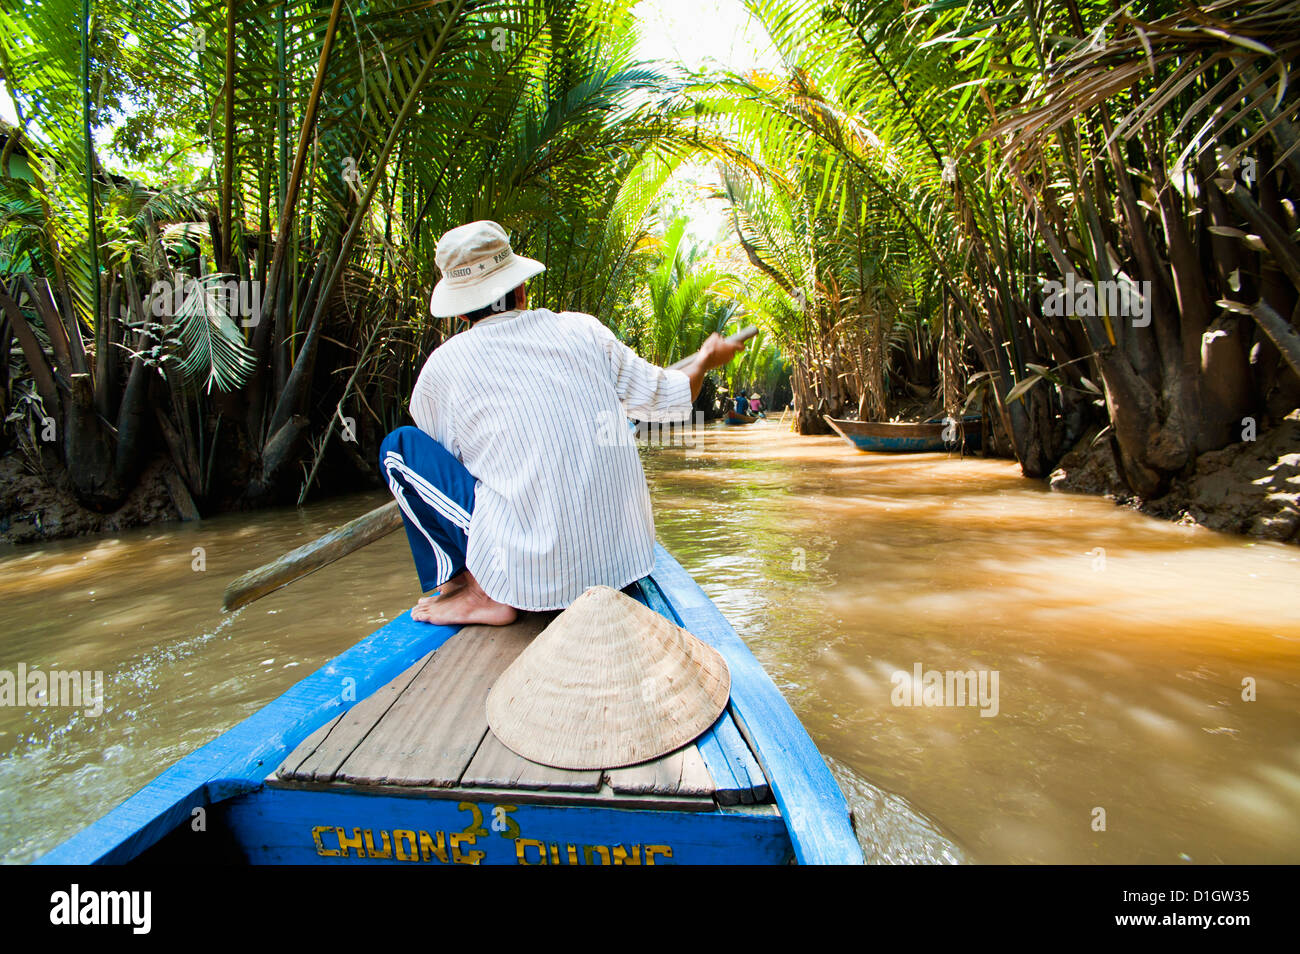 Boat trip up a narrow river in the Mekong Delta, Vietnam, Indochina, Southeast Asia, Asia - Stock Image